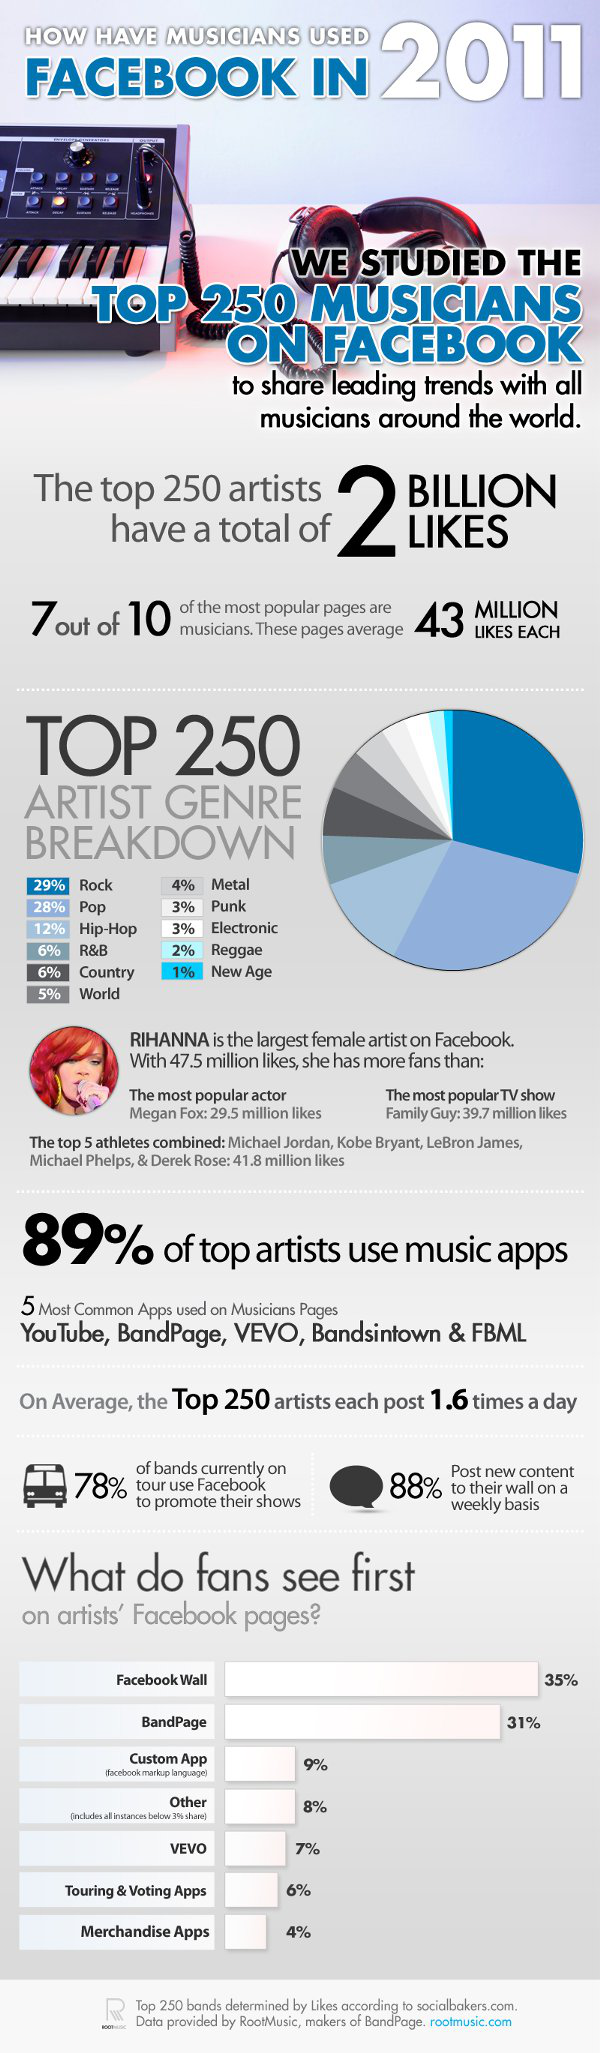 Music on Facebook Infographic